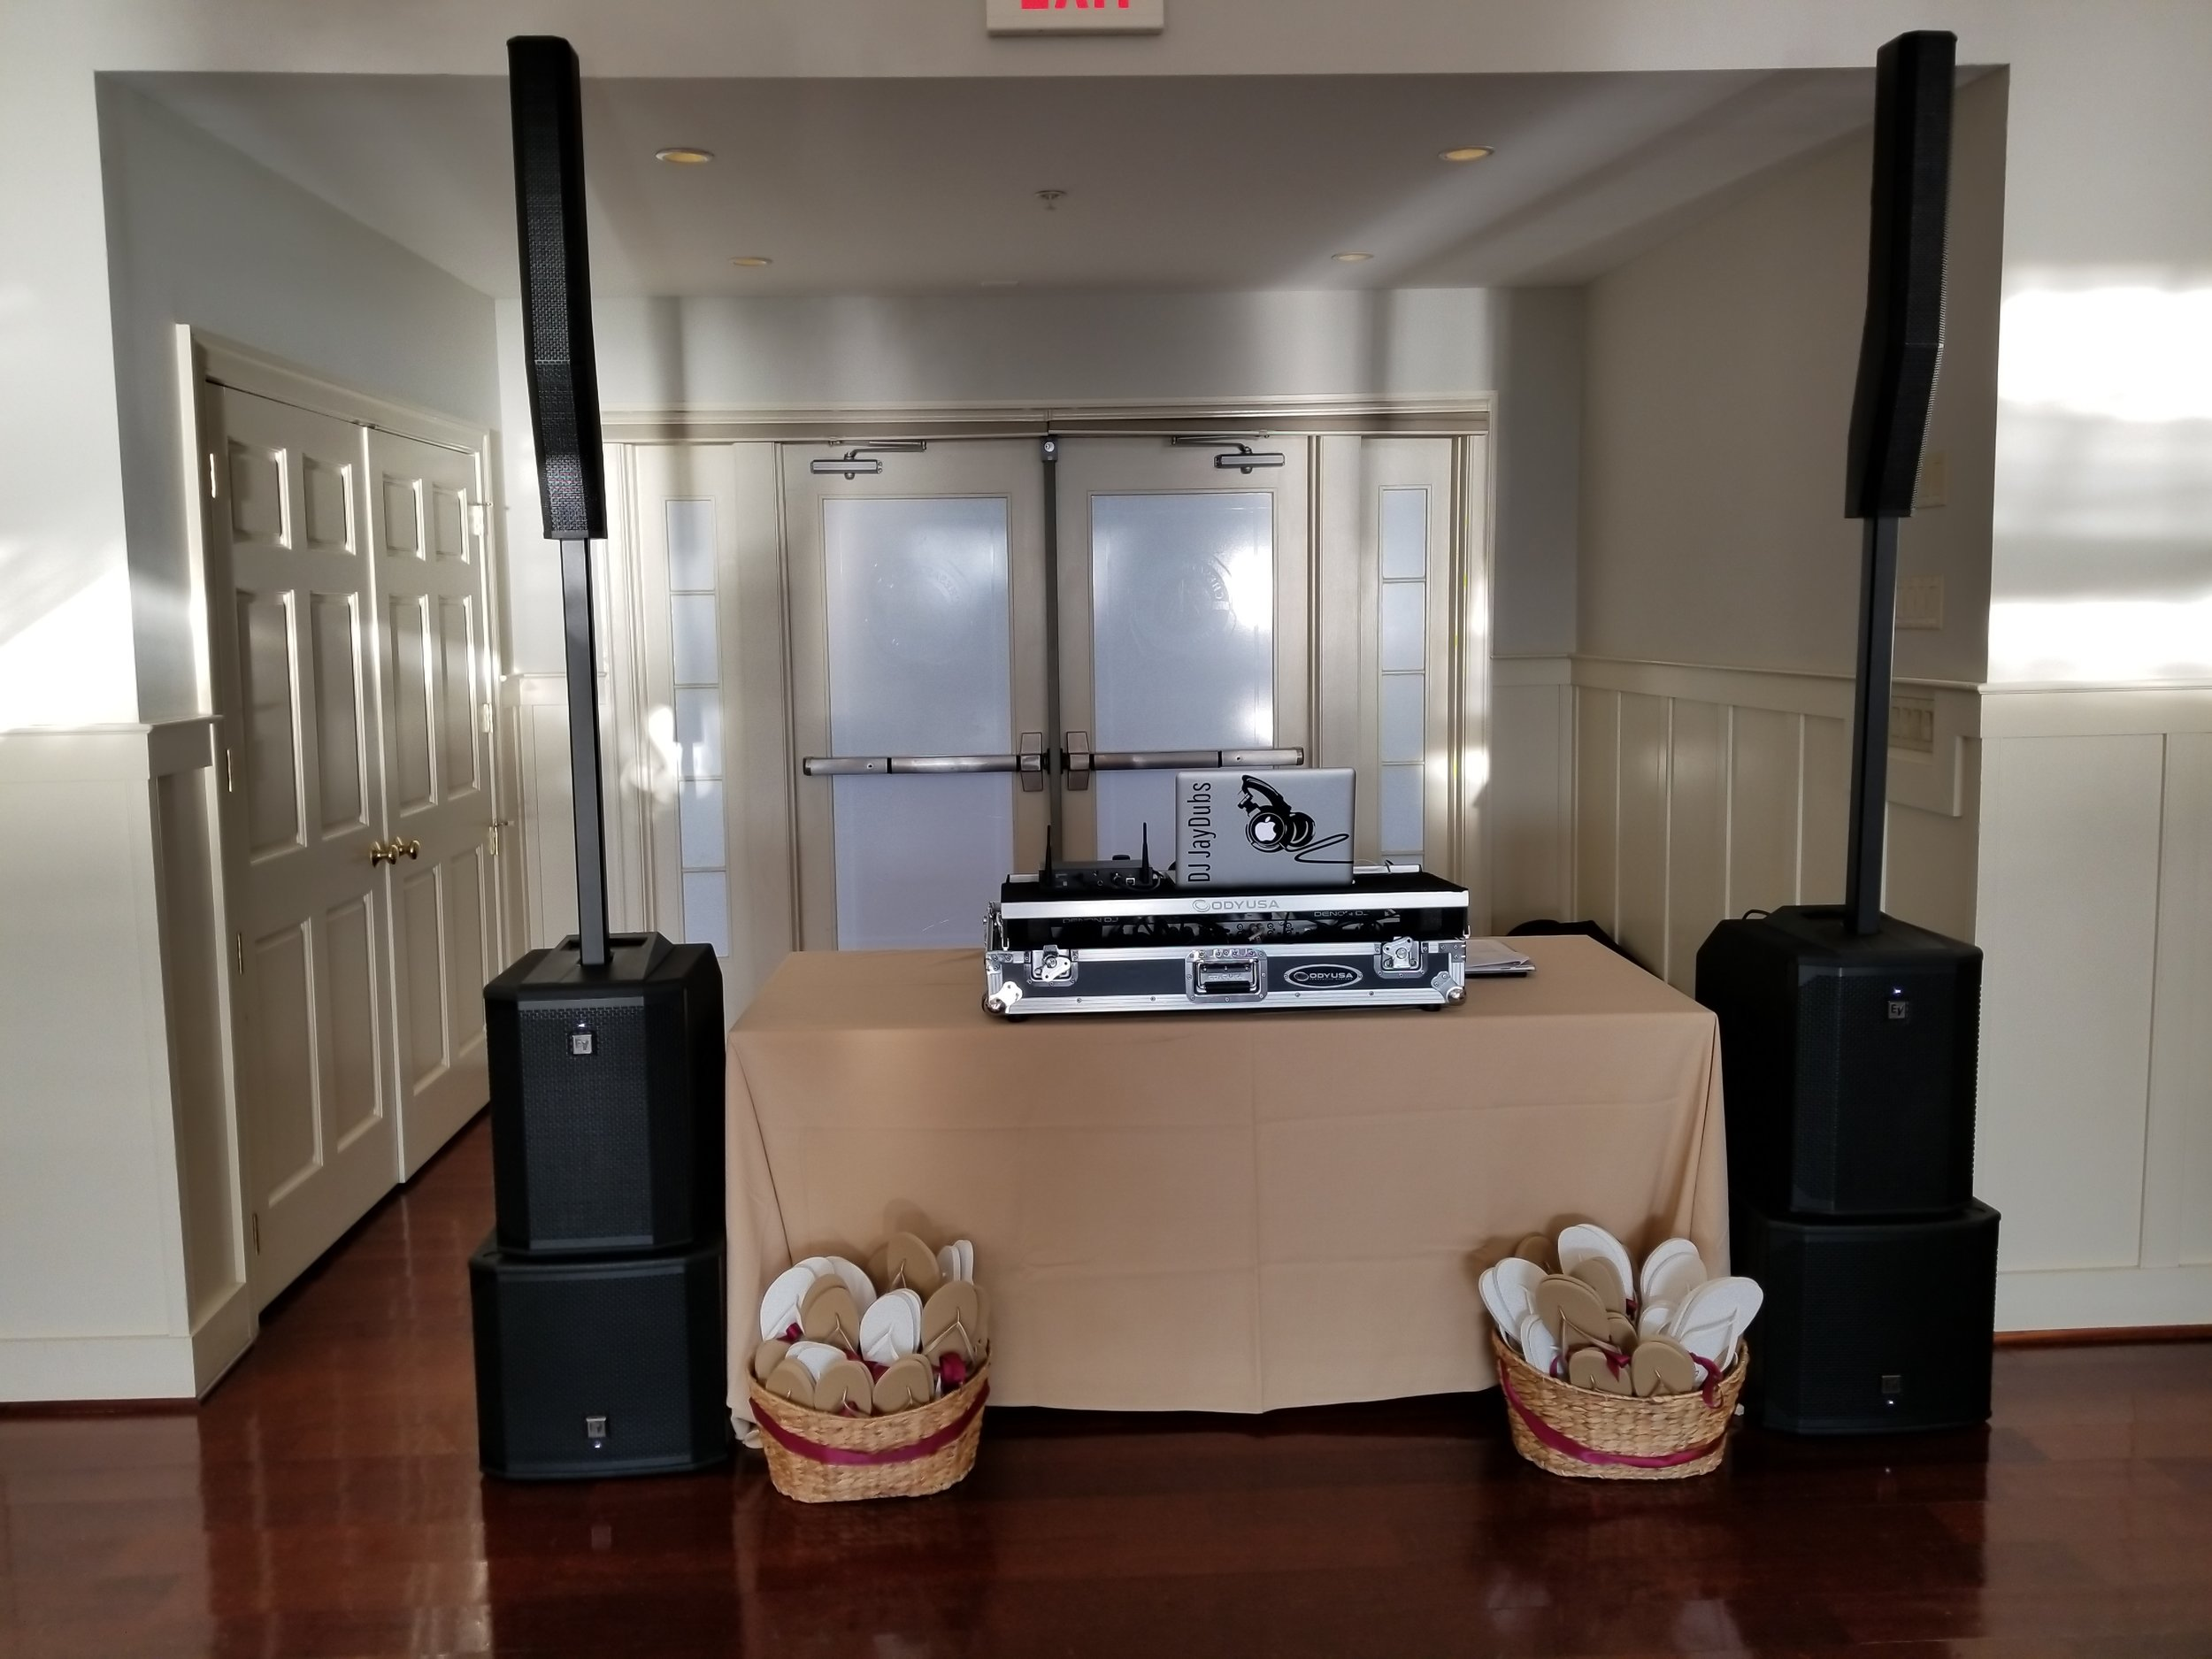 "Our new EV Evolve50 vertical array speakers perched on top of matching EV 12"" sub-woofers make for a clean presentation and they pack a 3,500 watt punch at CBBC's Beach House. Check out the client's flip flop basket - a great idea that allows the ladies to be more comfortable on the dance floor."